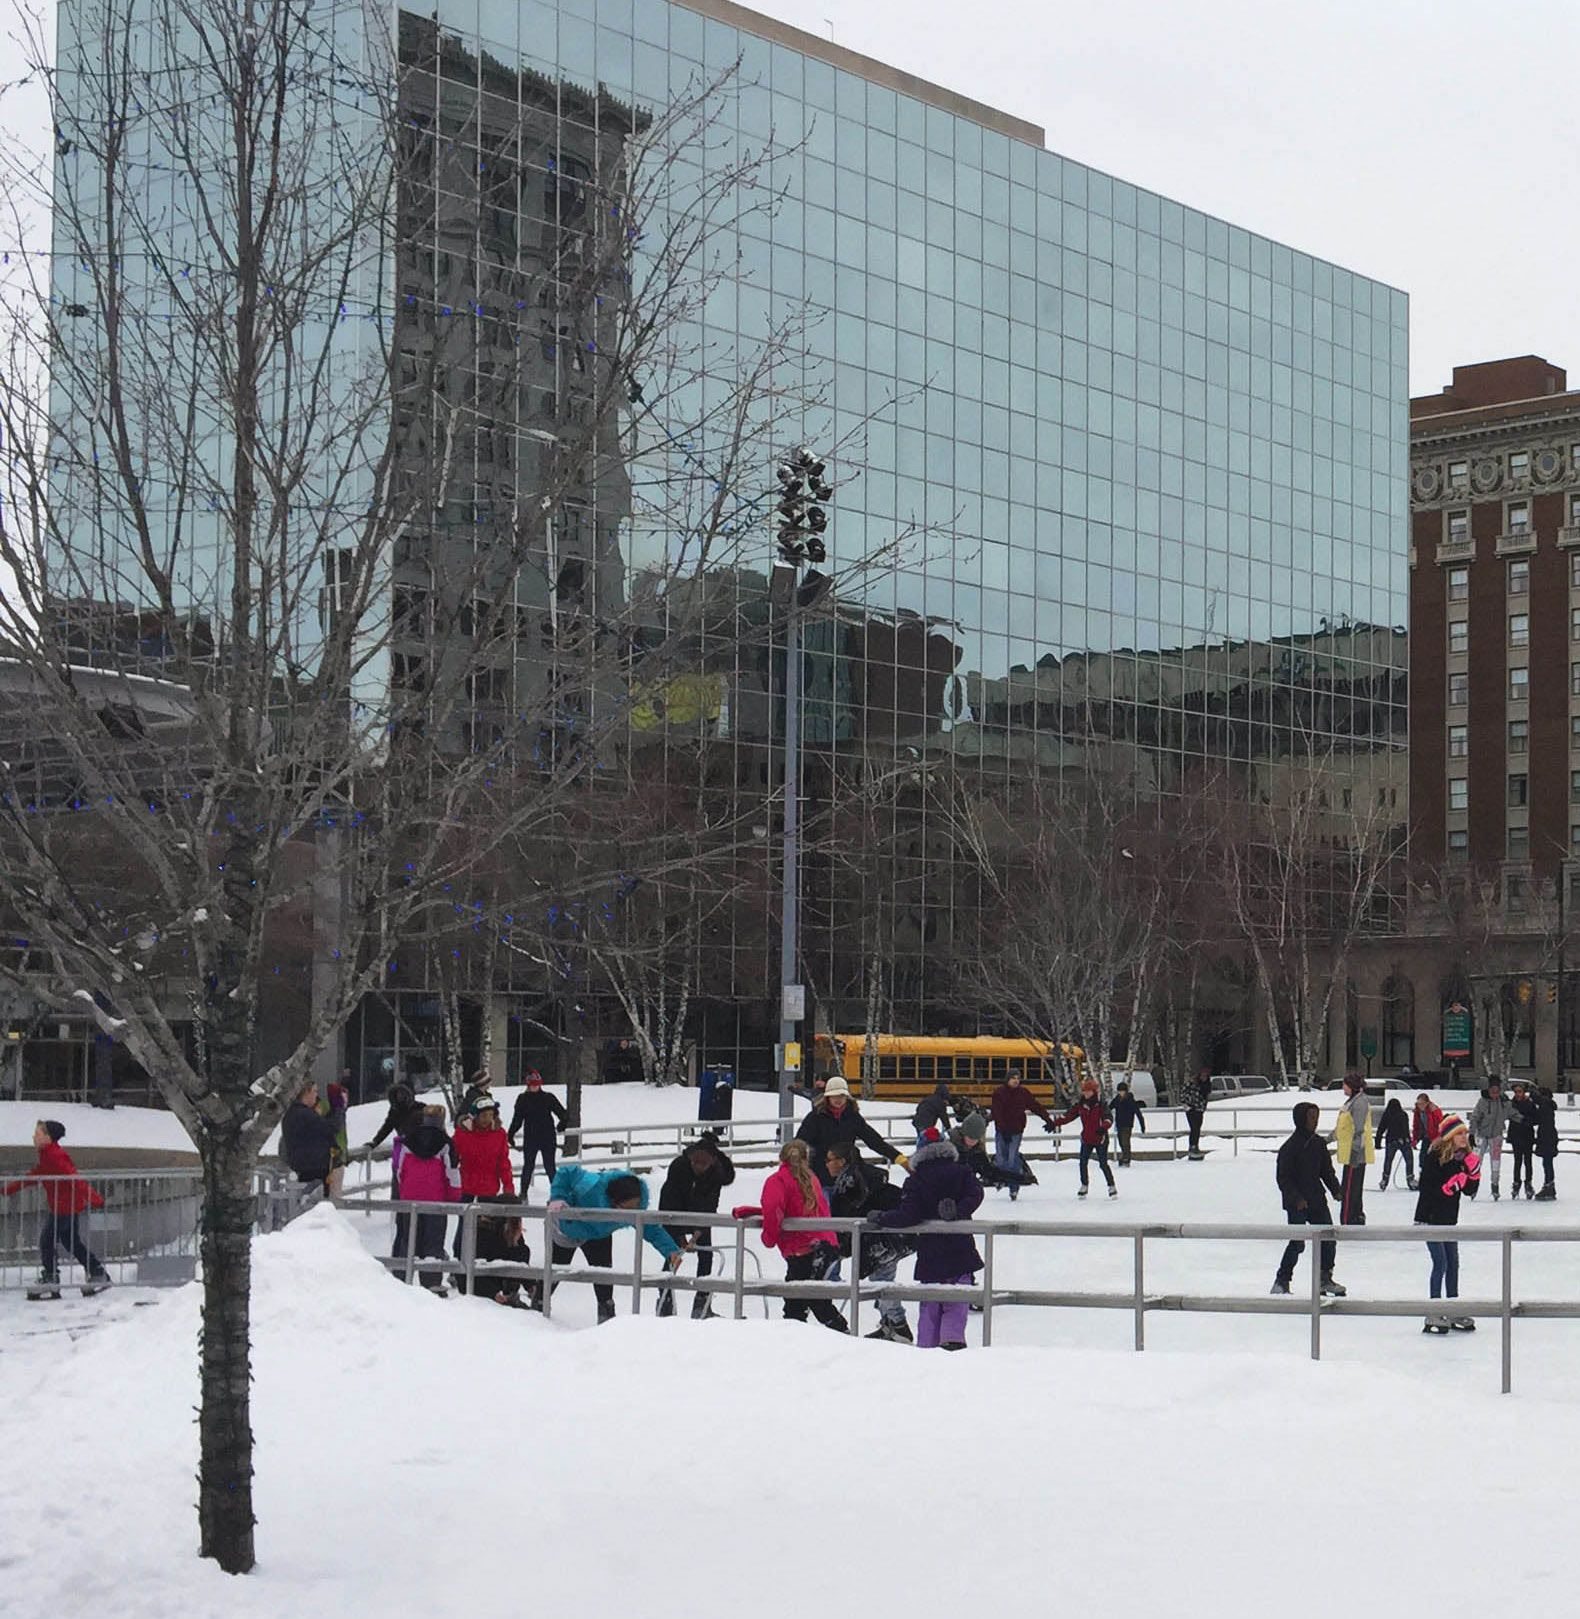 Instead of a gym, PE happens at downtown facilities like an ice-skating rink and the YMCA.